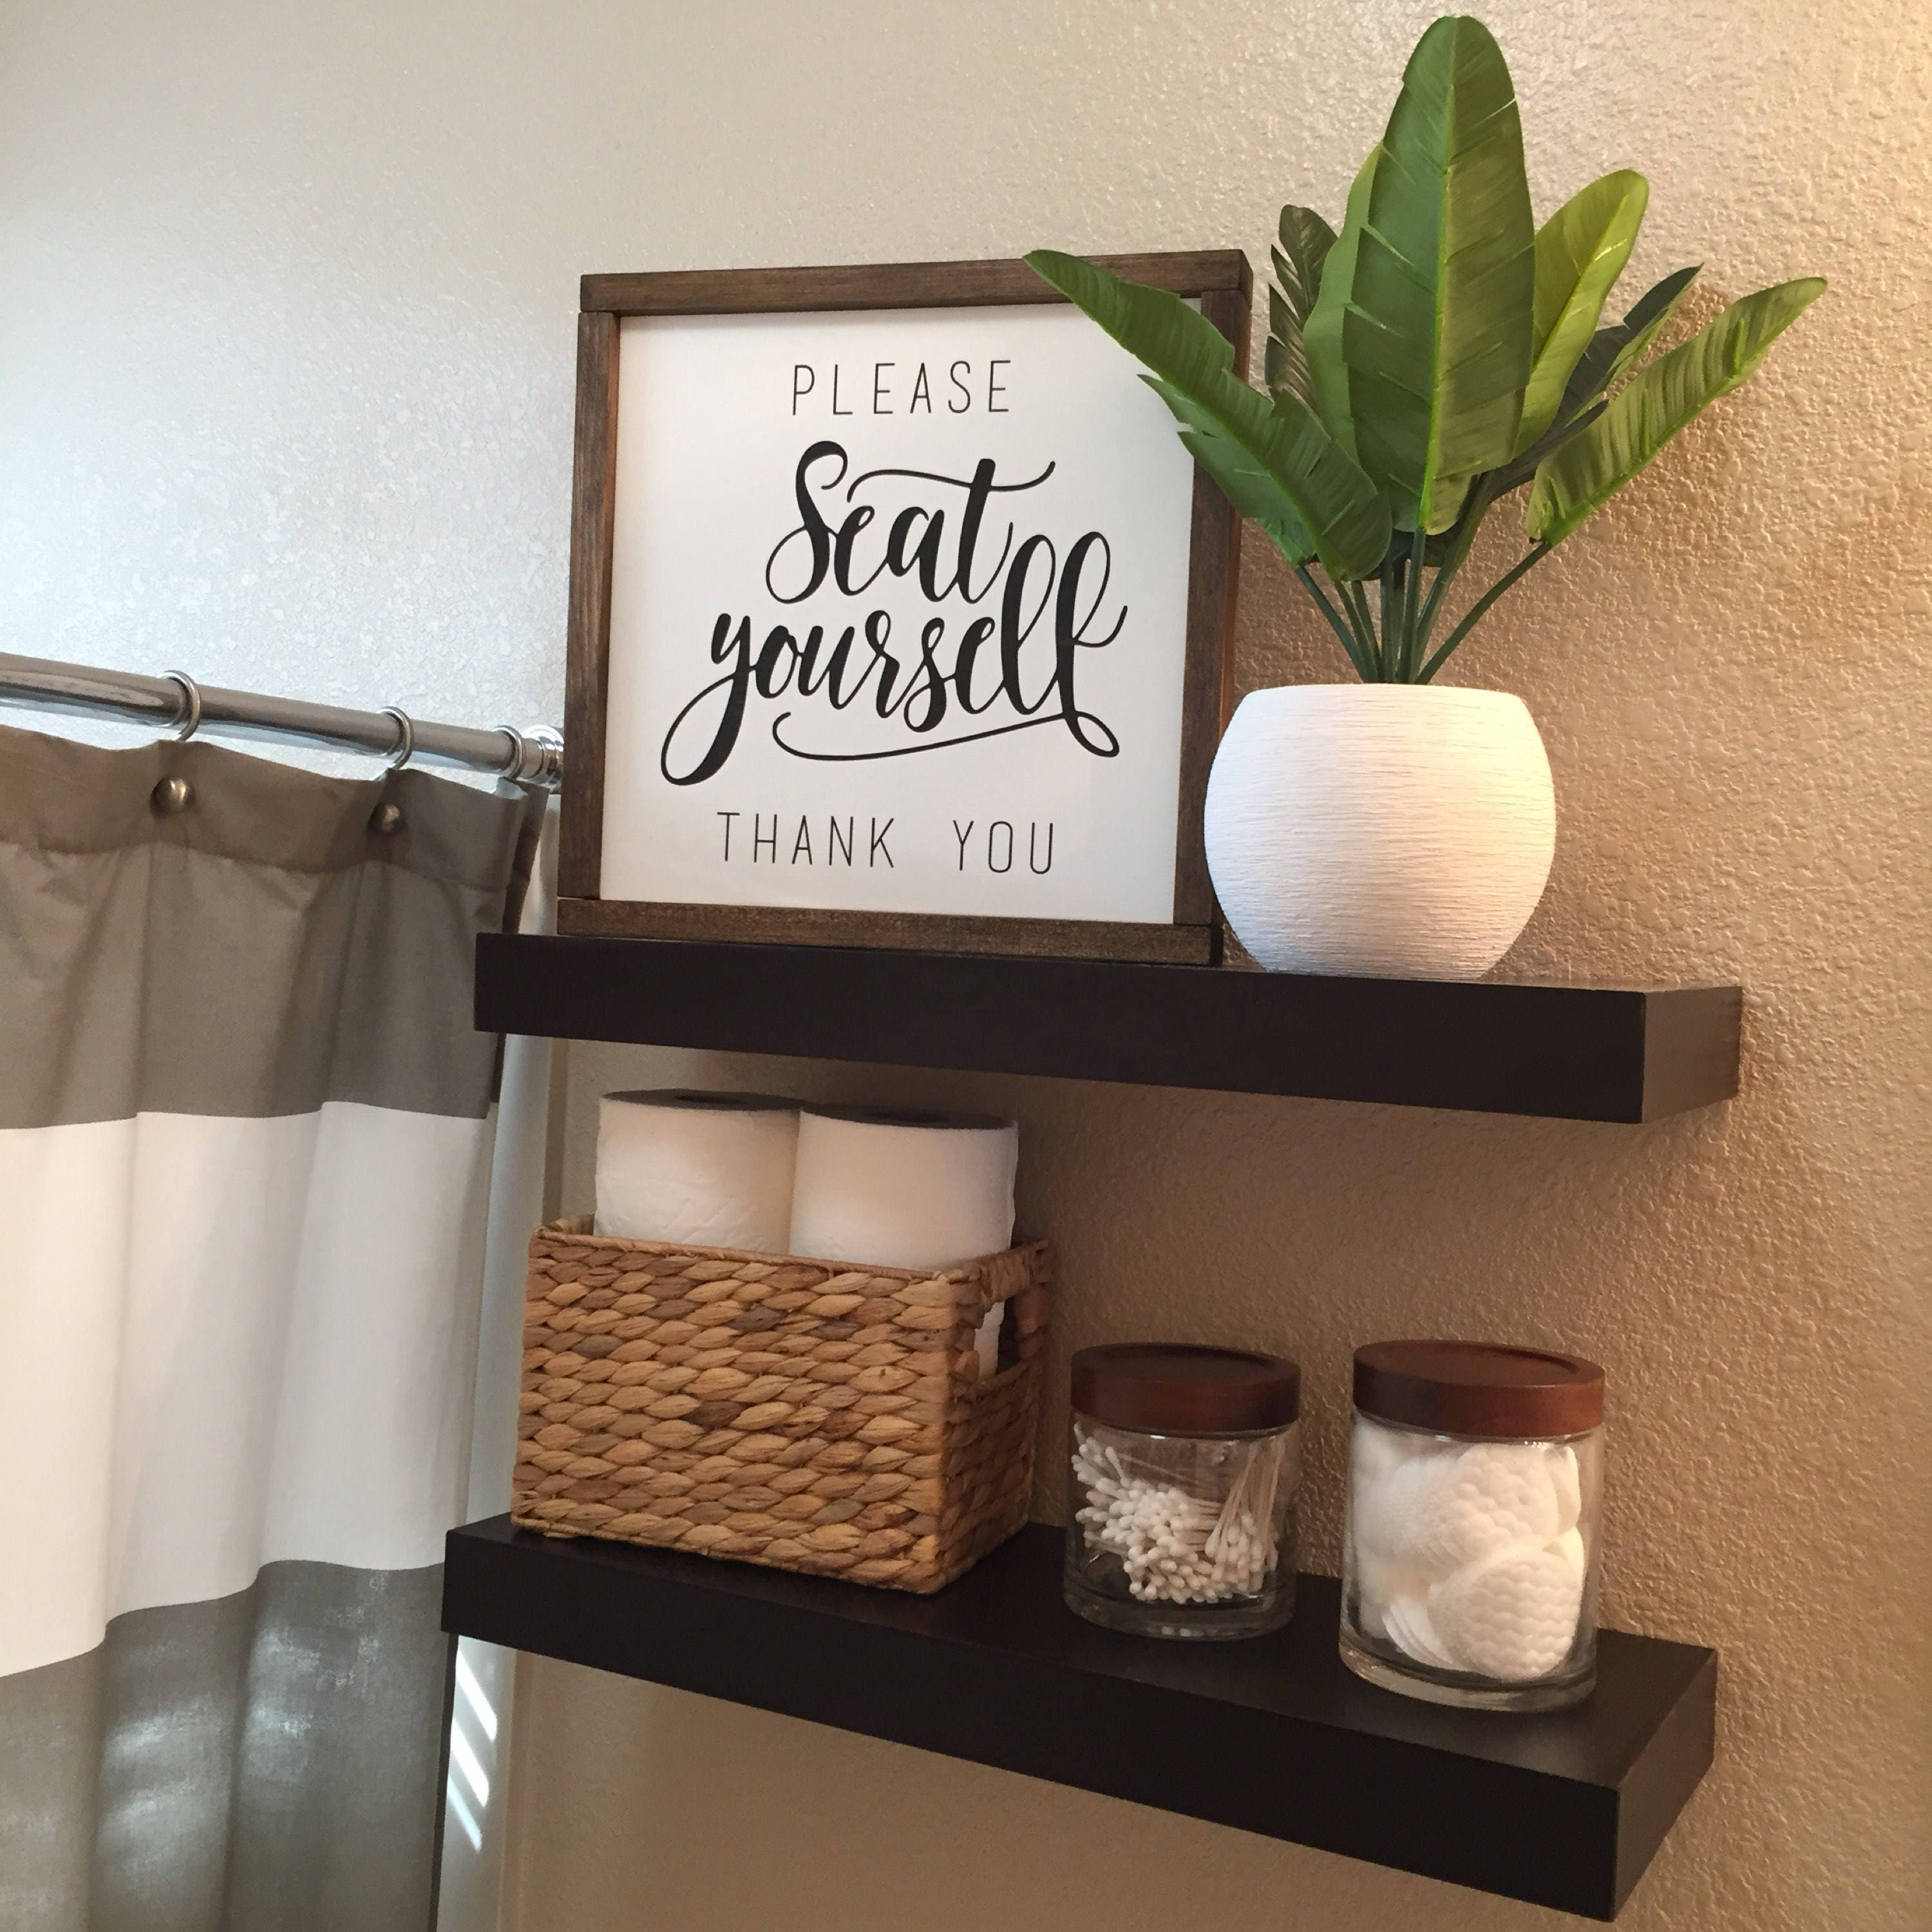 Please seat yourself bathroom sign framed wood sign for Bathroom decor rustic